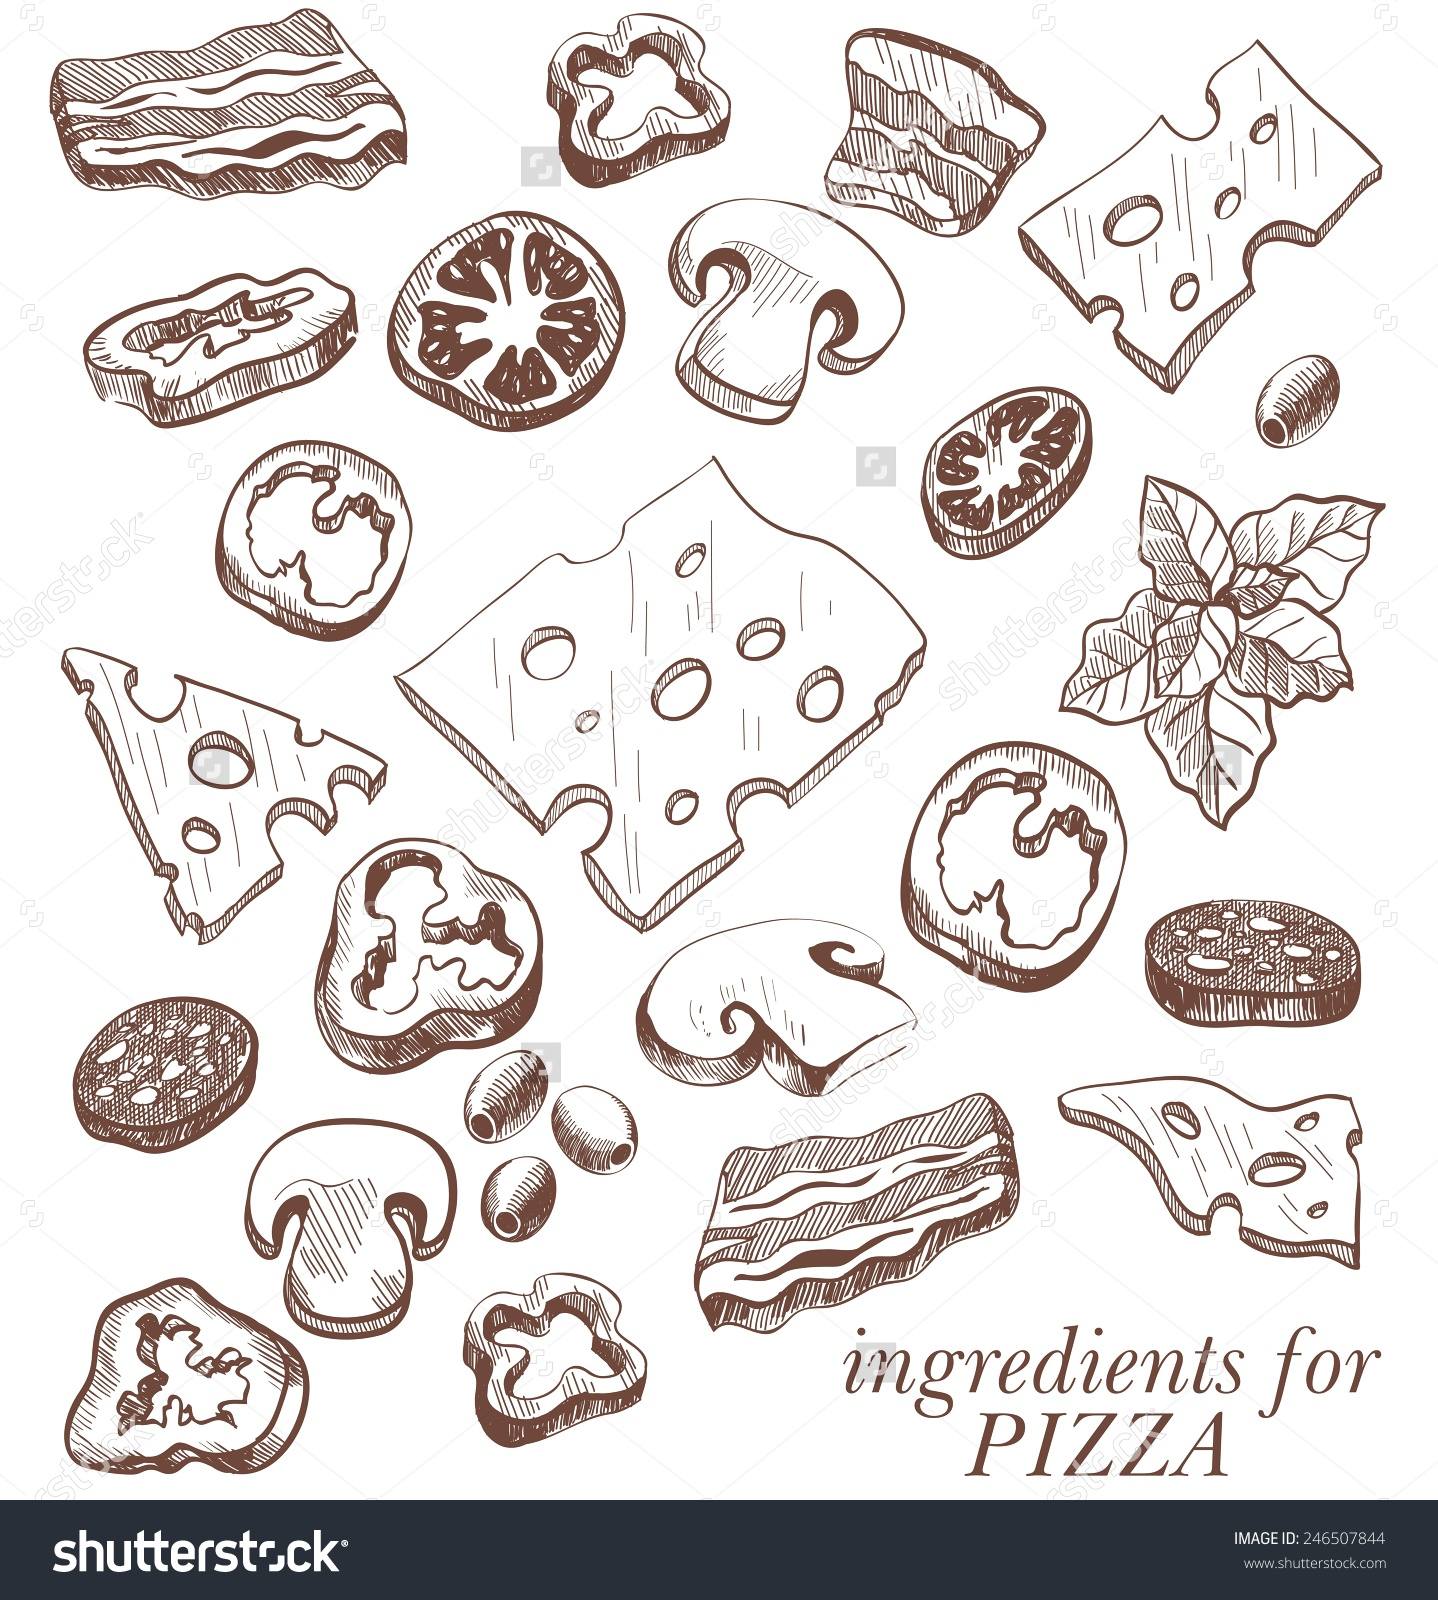 Pizza toppings clipart black and white.